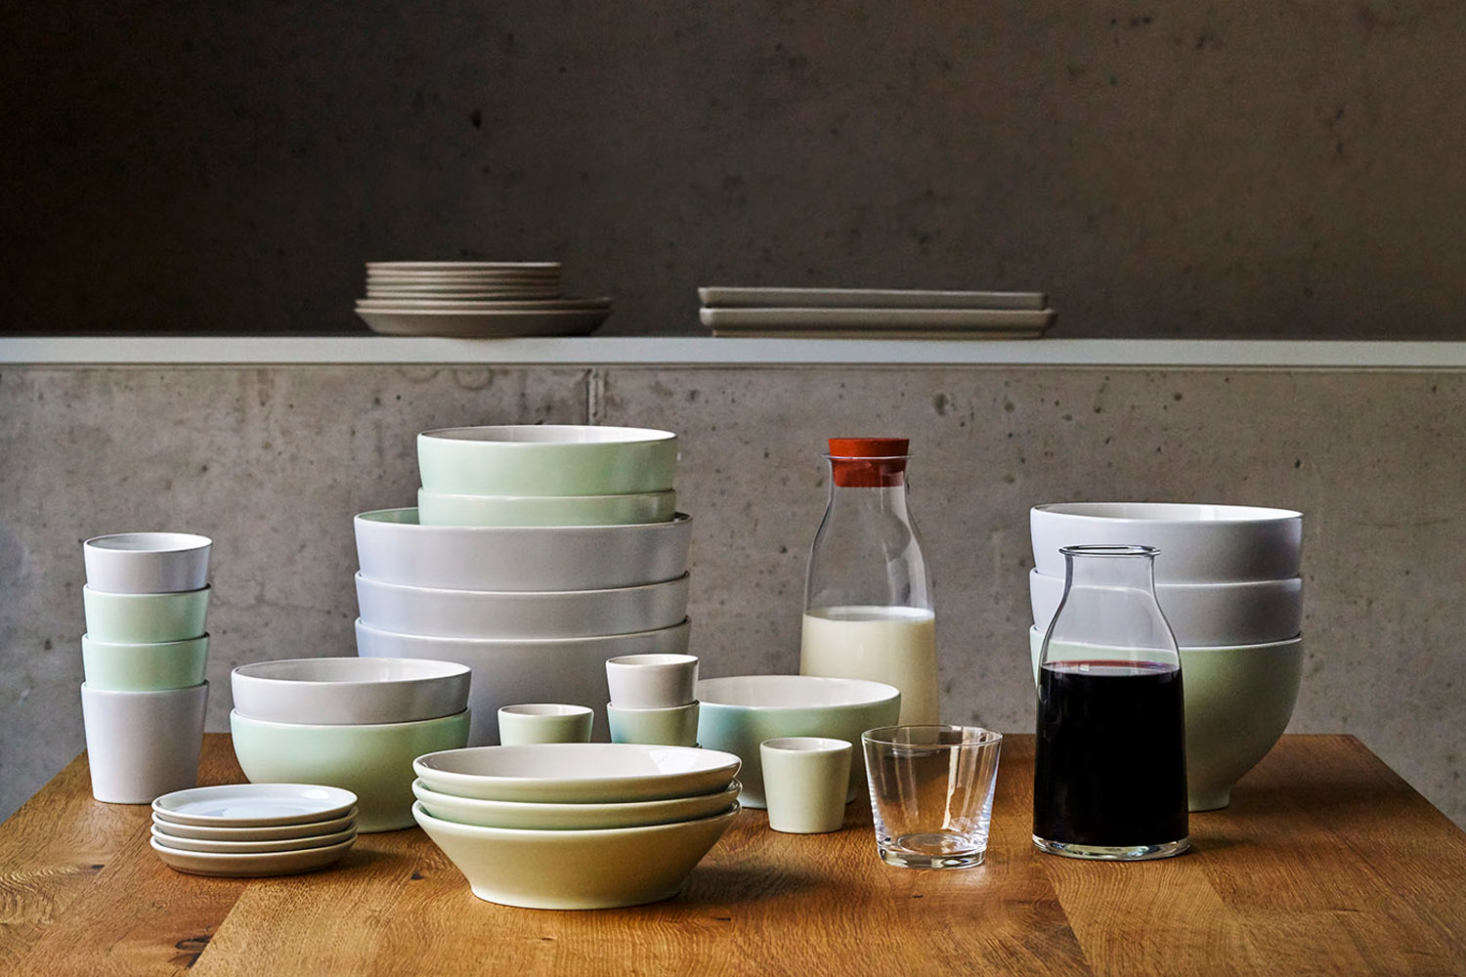 David Chipperfield Architects were inspired by ceramics from Korea, Japan, and China and the work of Giorgio Morandi when they designed the Tonale Tableware for Alessi from 2009 to 2018. The set comes in a range of colors, shown here, as well as black and white. Each piece is available individually from $16 to $96 at Alessi.